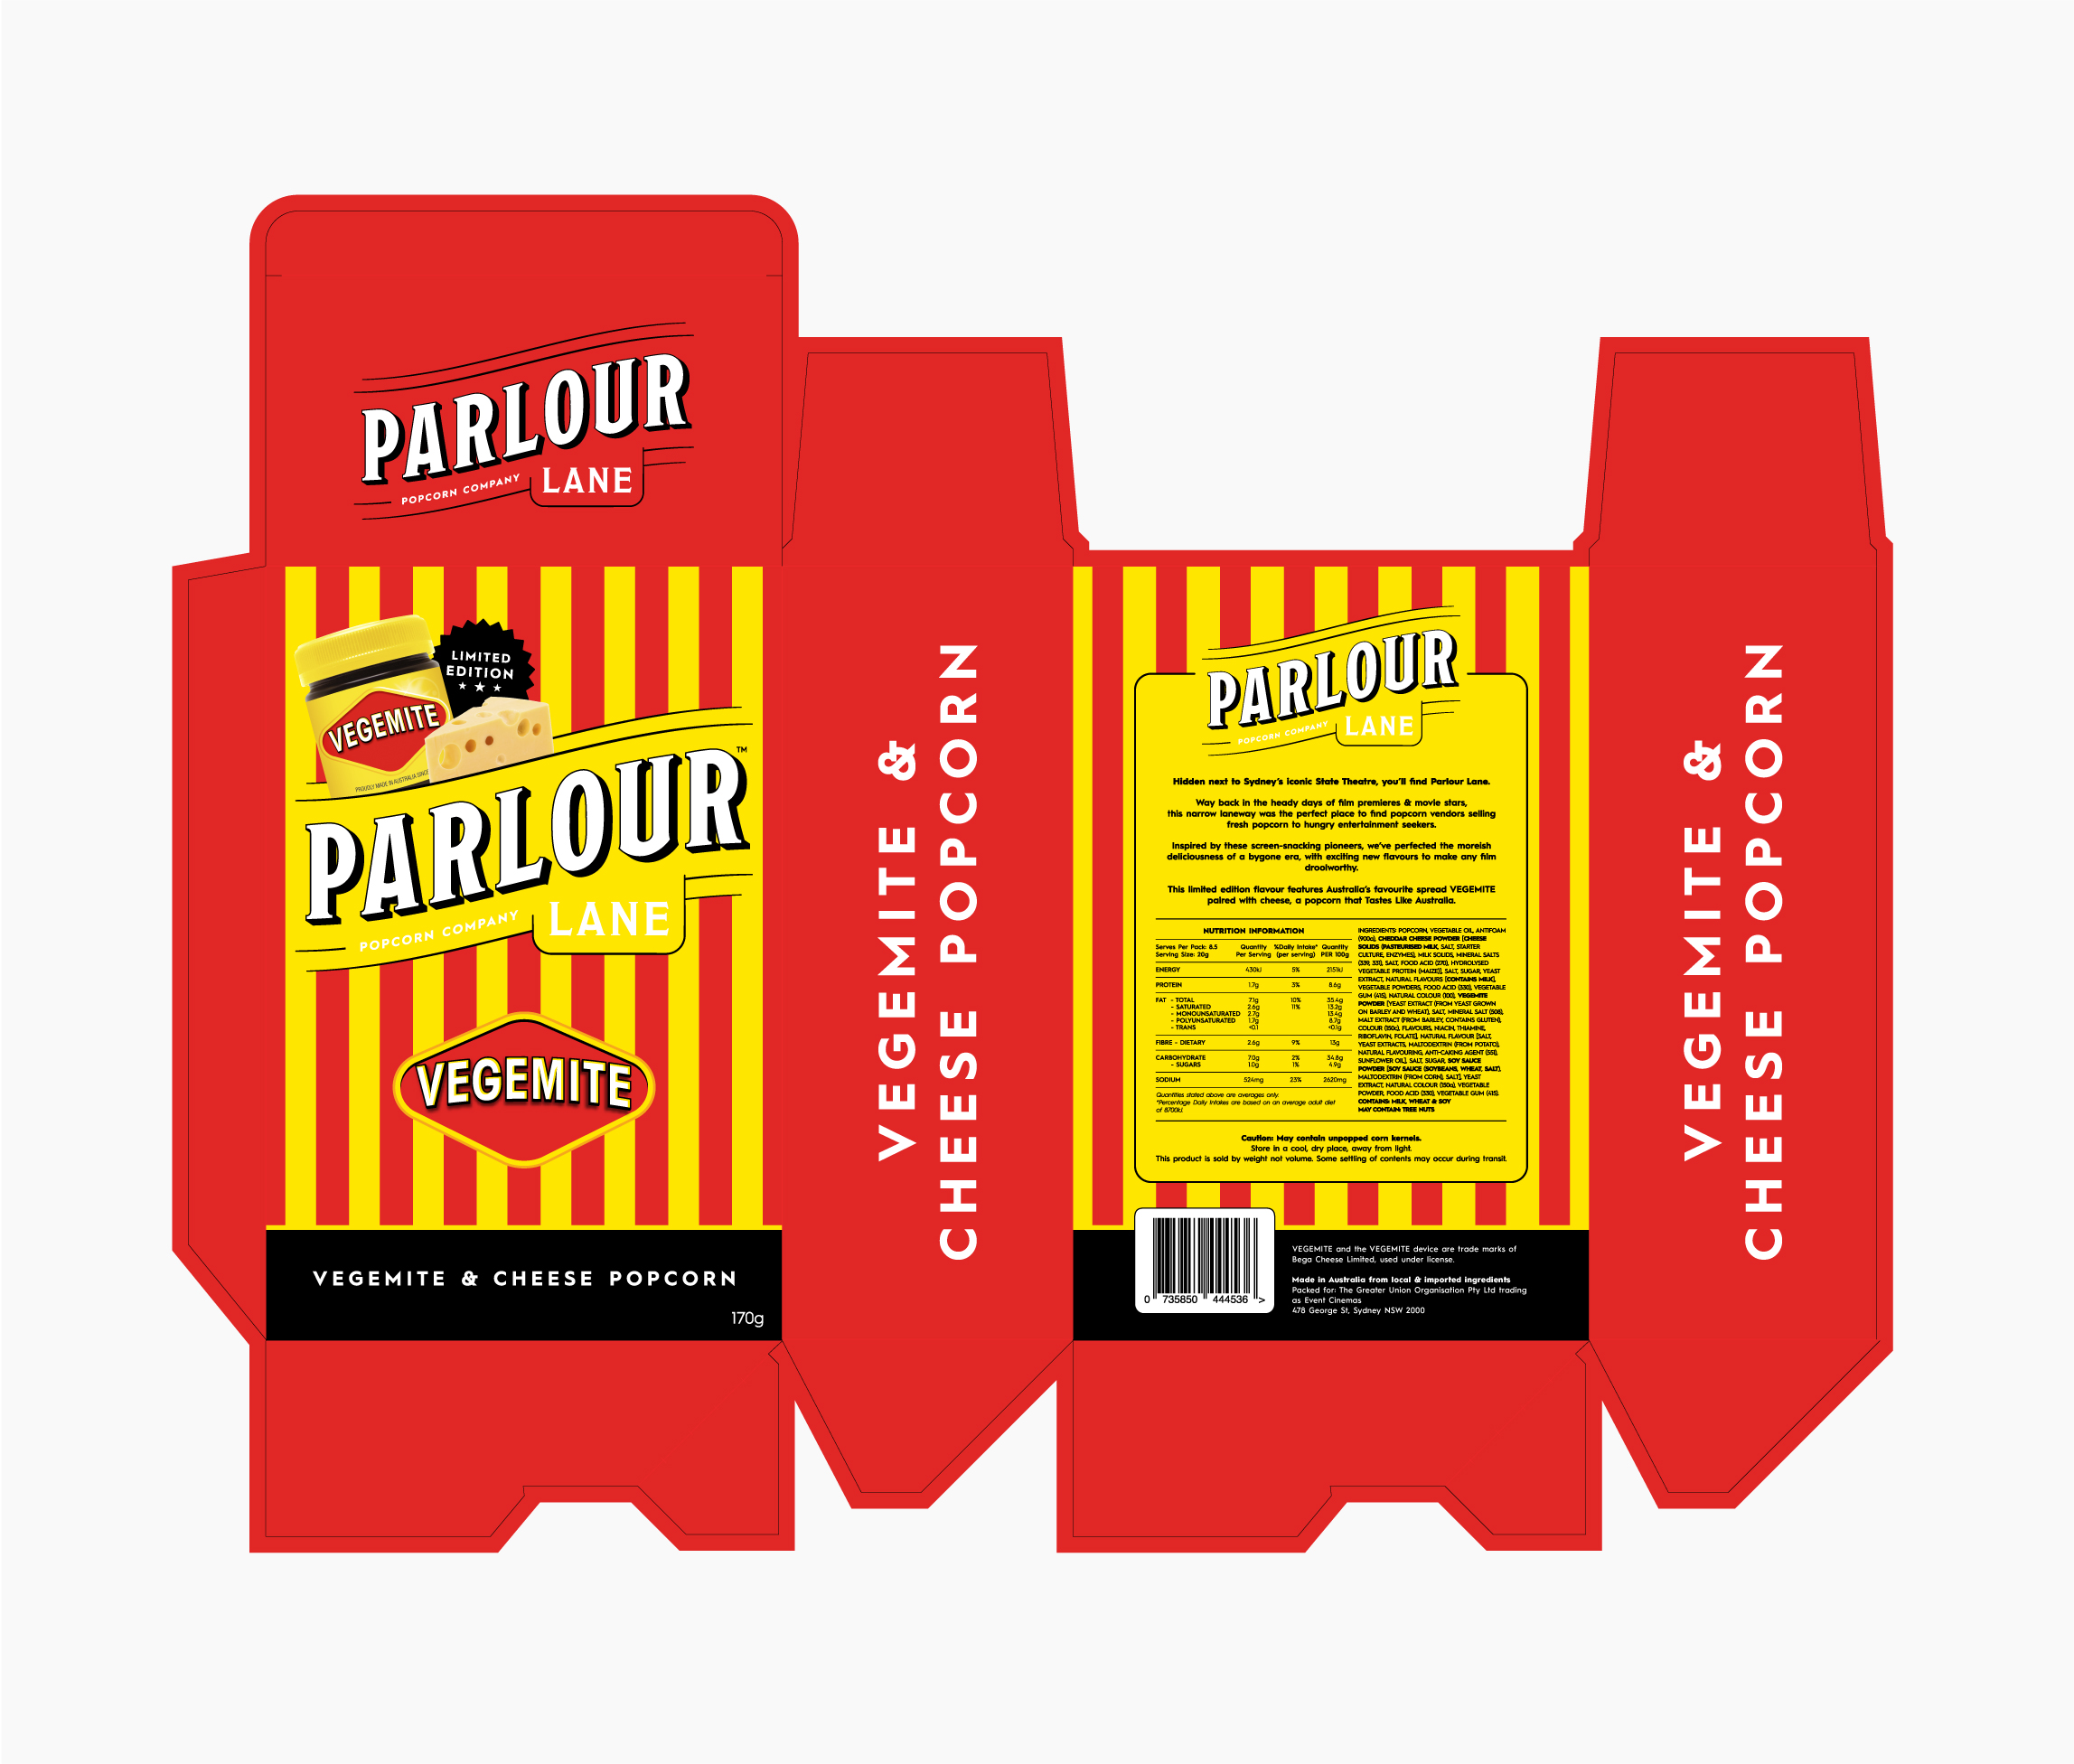 Parlour Lane Vegemite Package Design 4